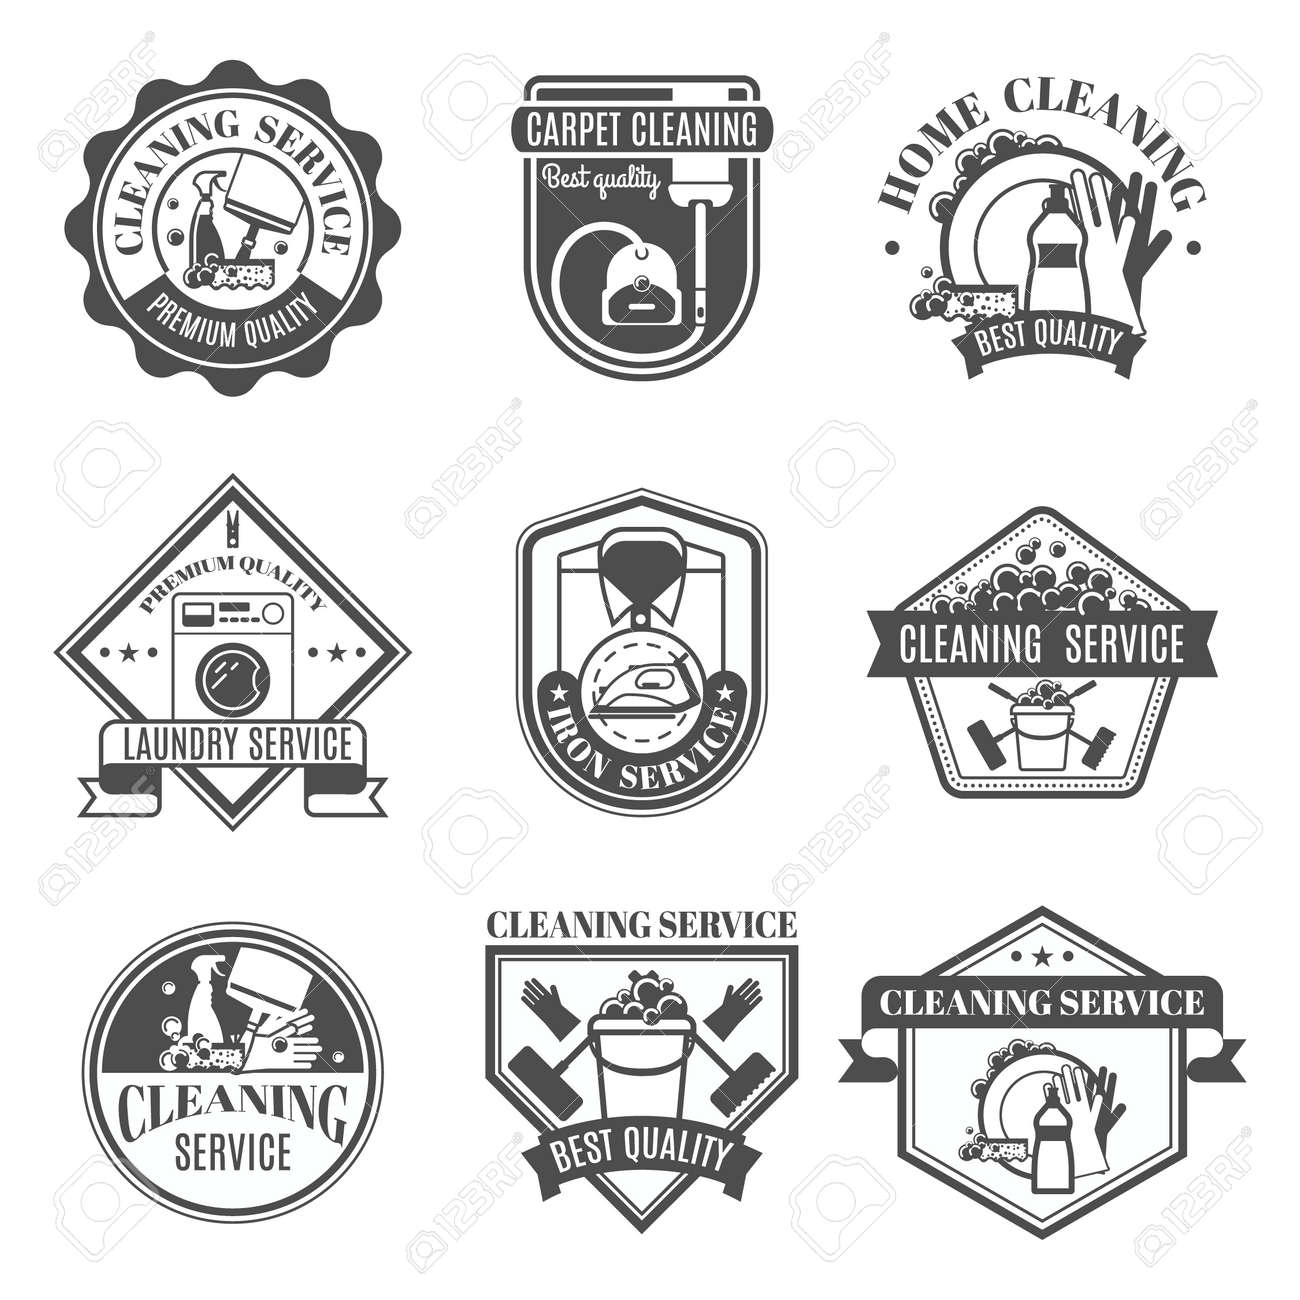 Isolated black and white cleaning emblems or stickers in different shapes and types with ribbons vector illustration - 166472282